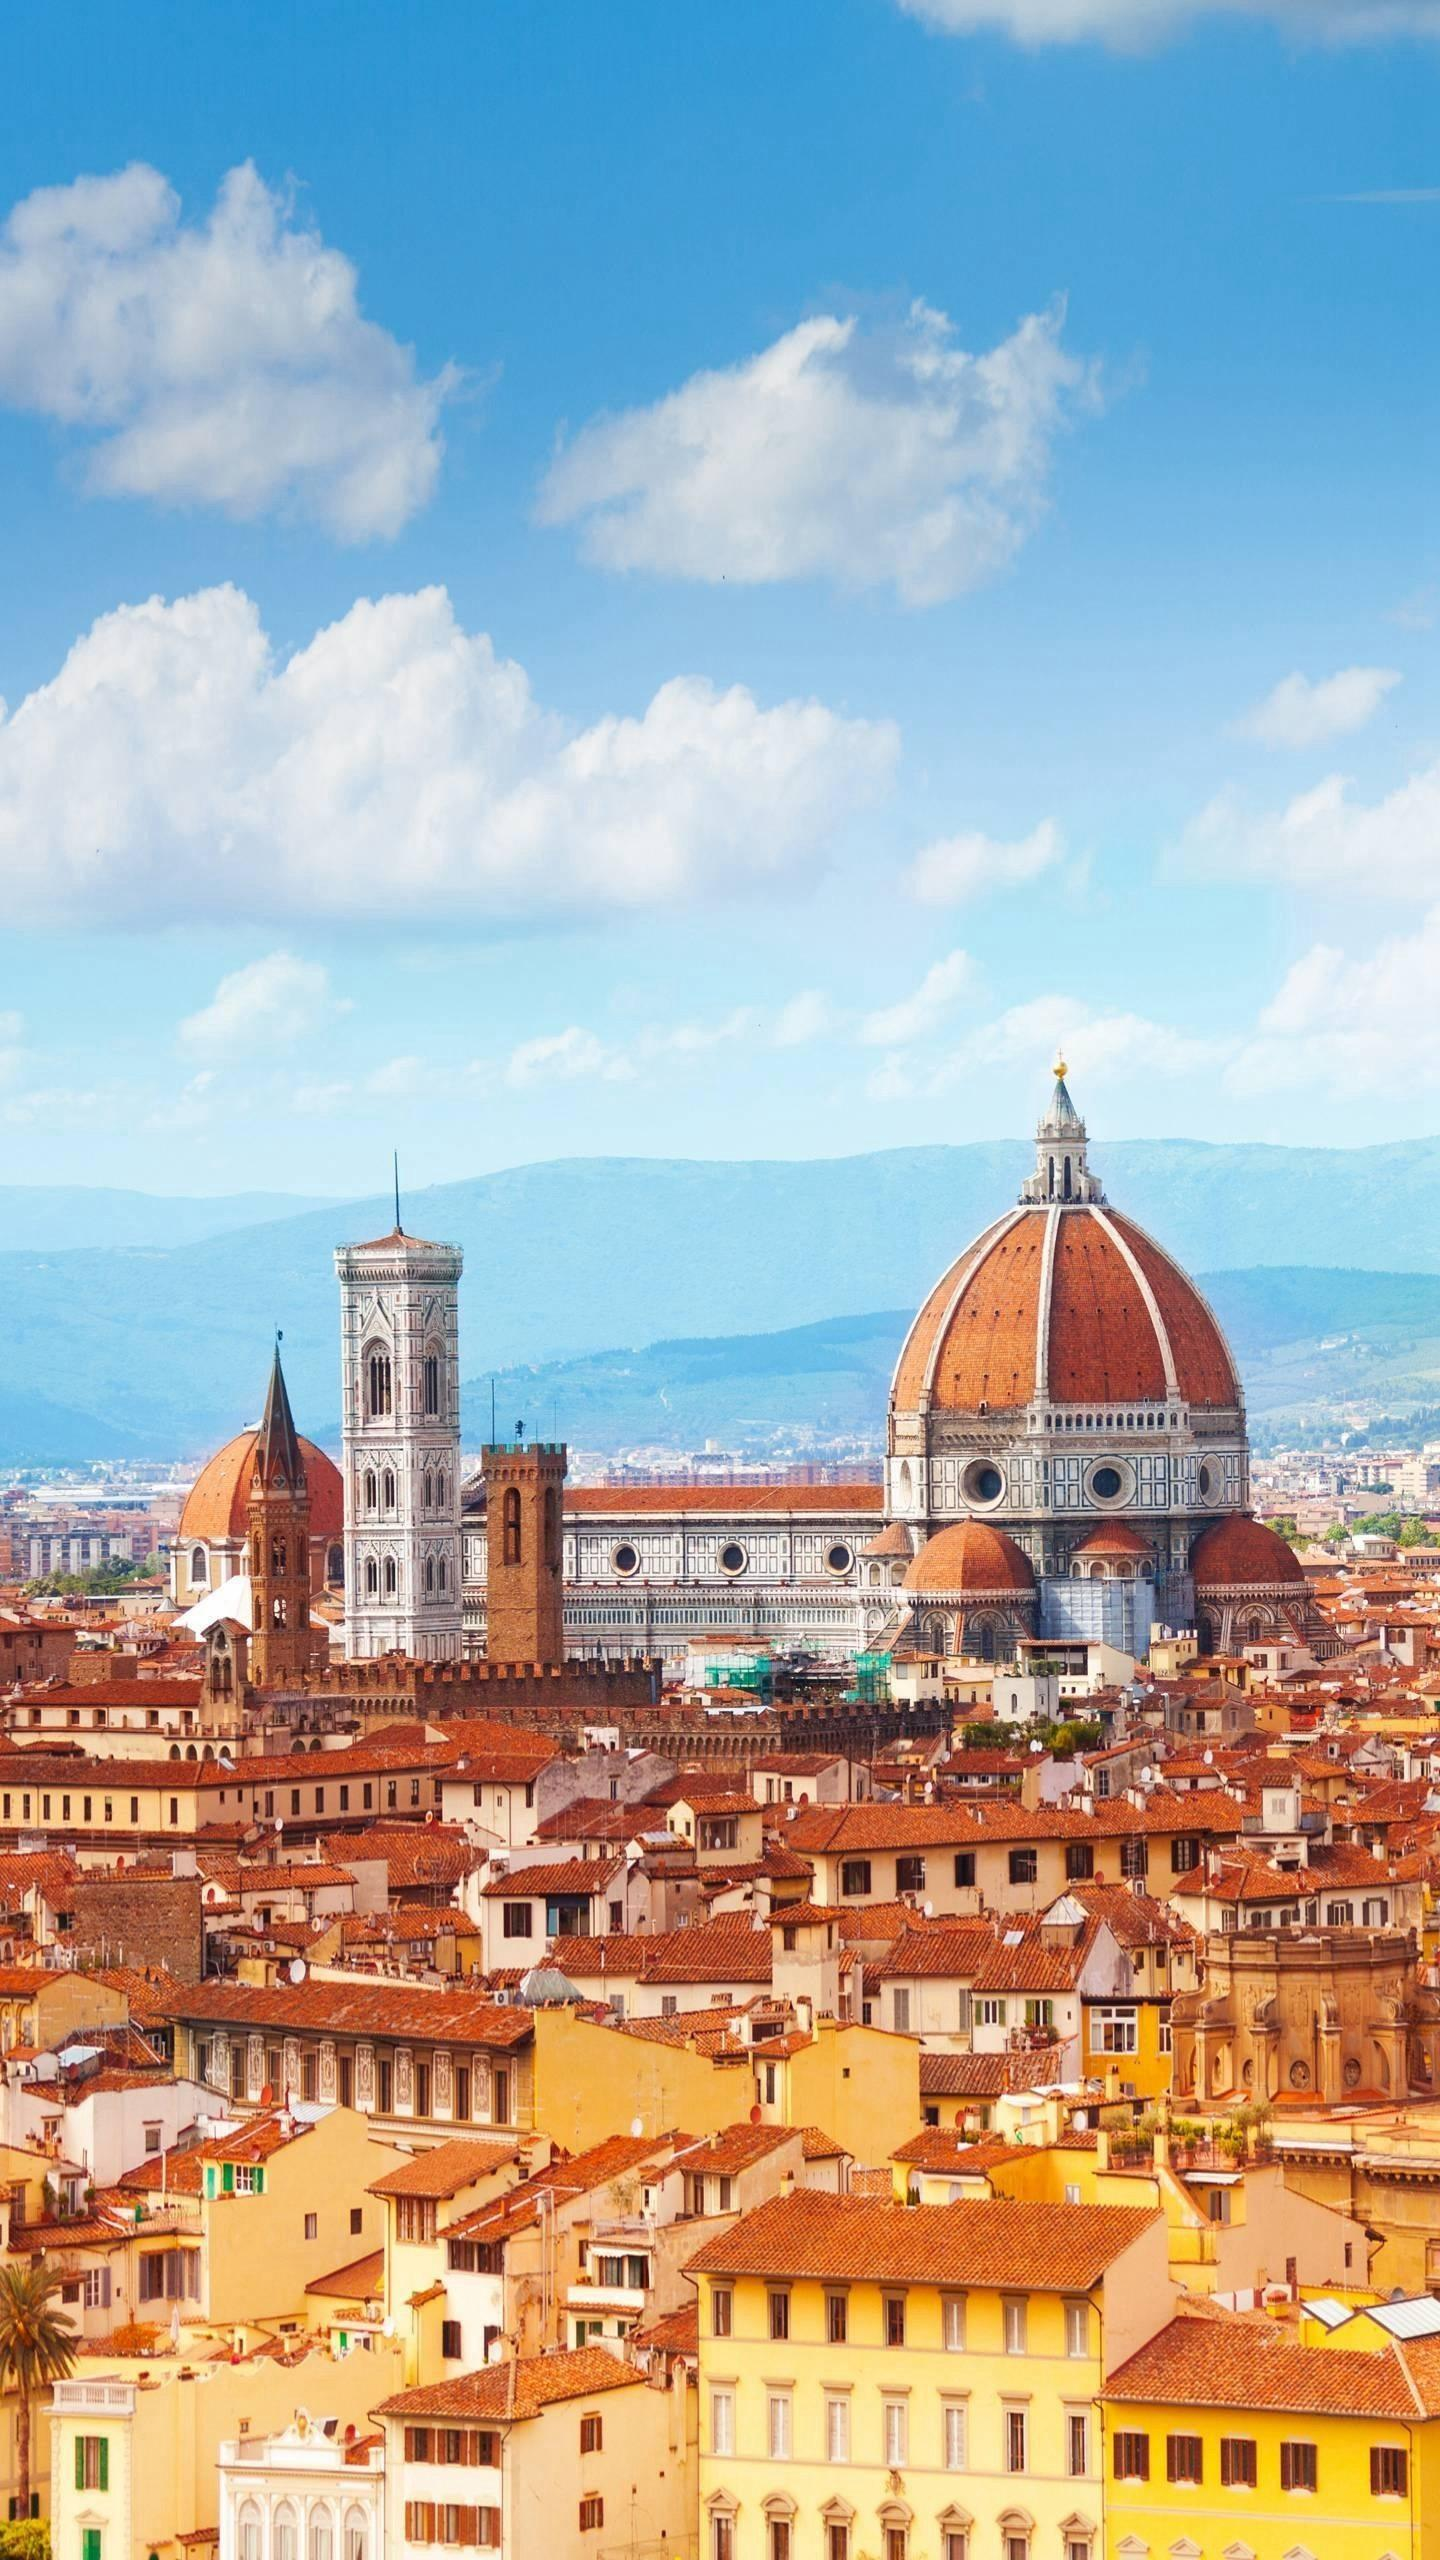 The sacred church. The main church of Florence was the greatest architectural masterpiece of the Renaissance, and the dark red dome became its symbol.